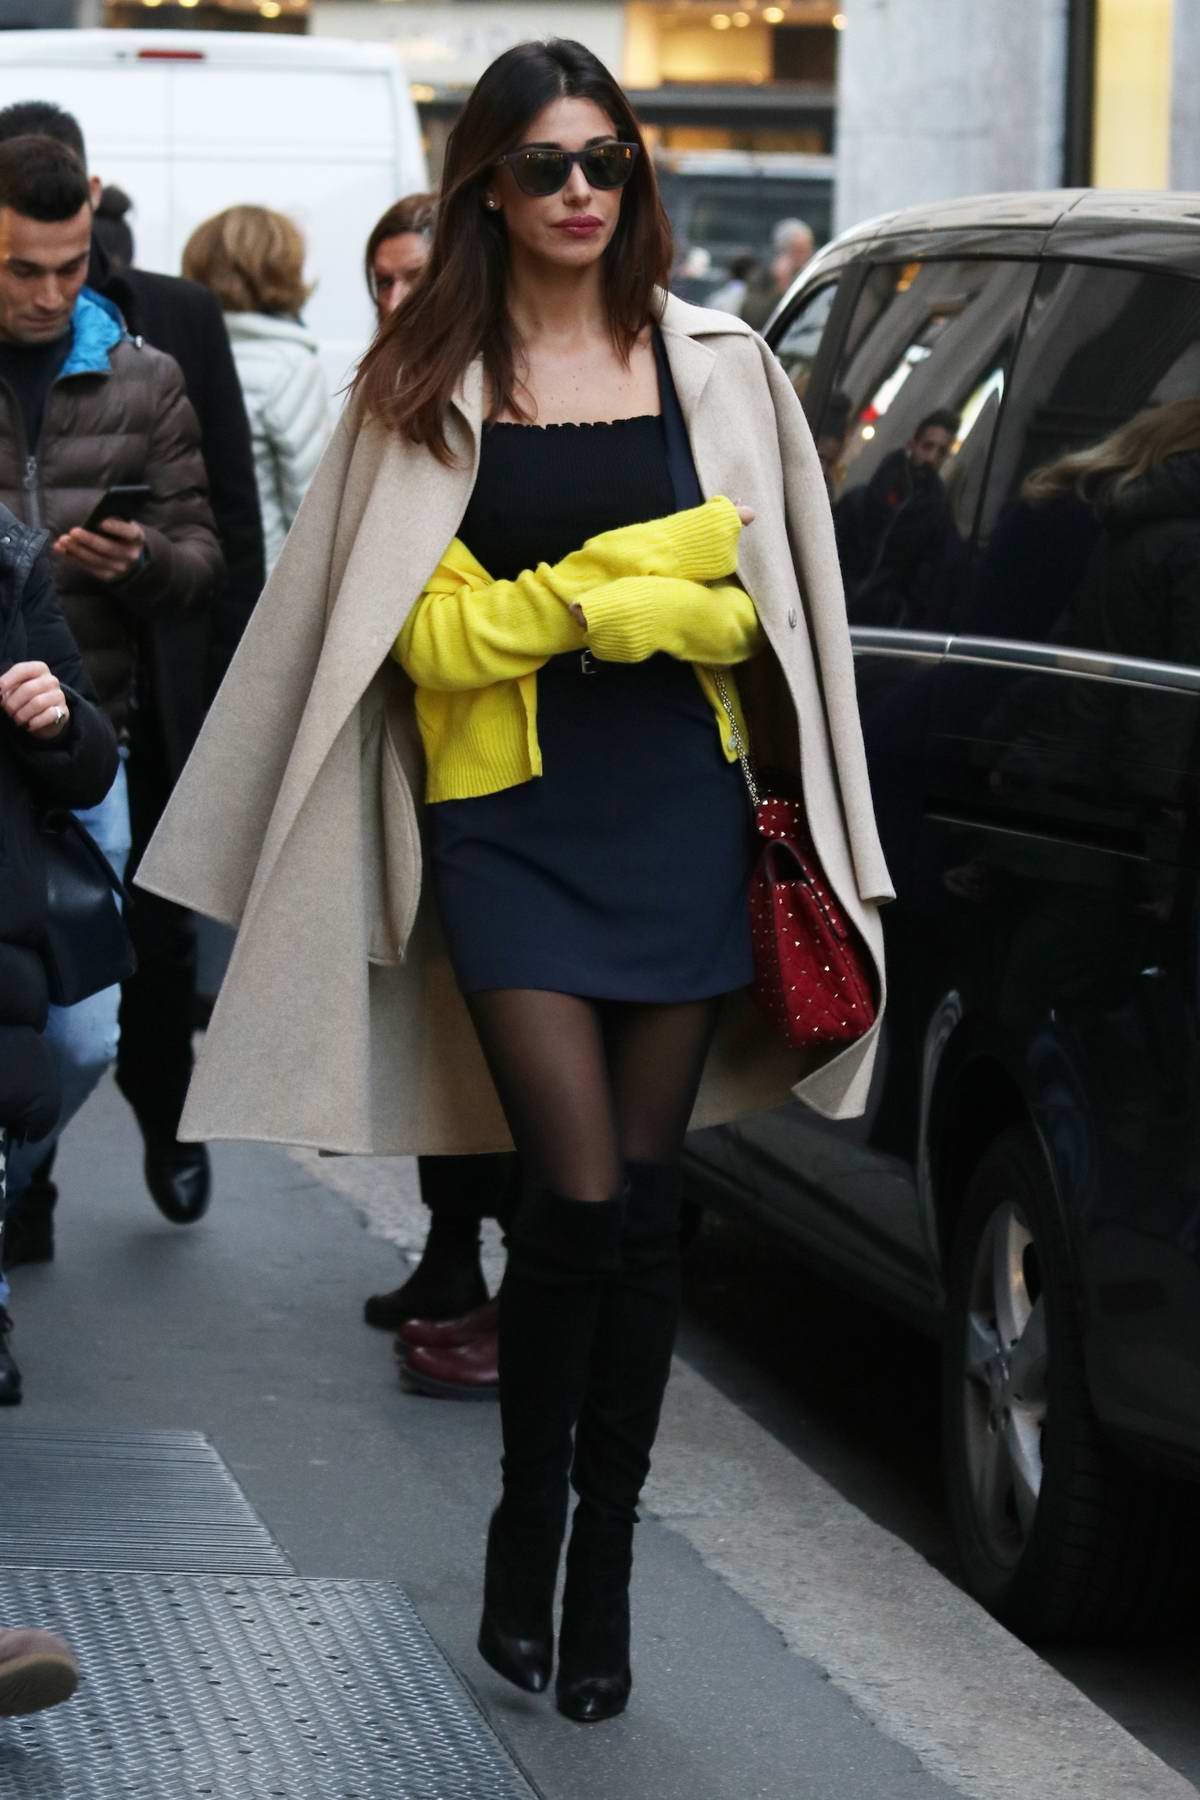 Belen Rodriguez spotted while shopping with a friend in Milan, Italy